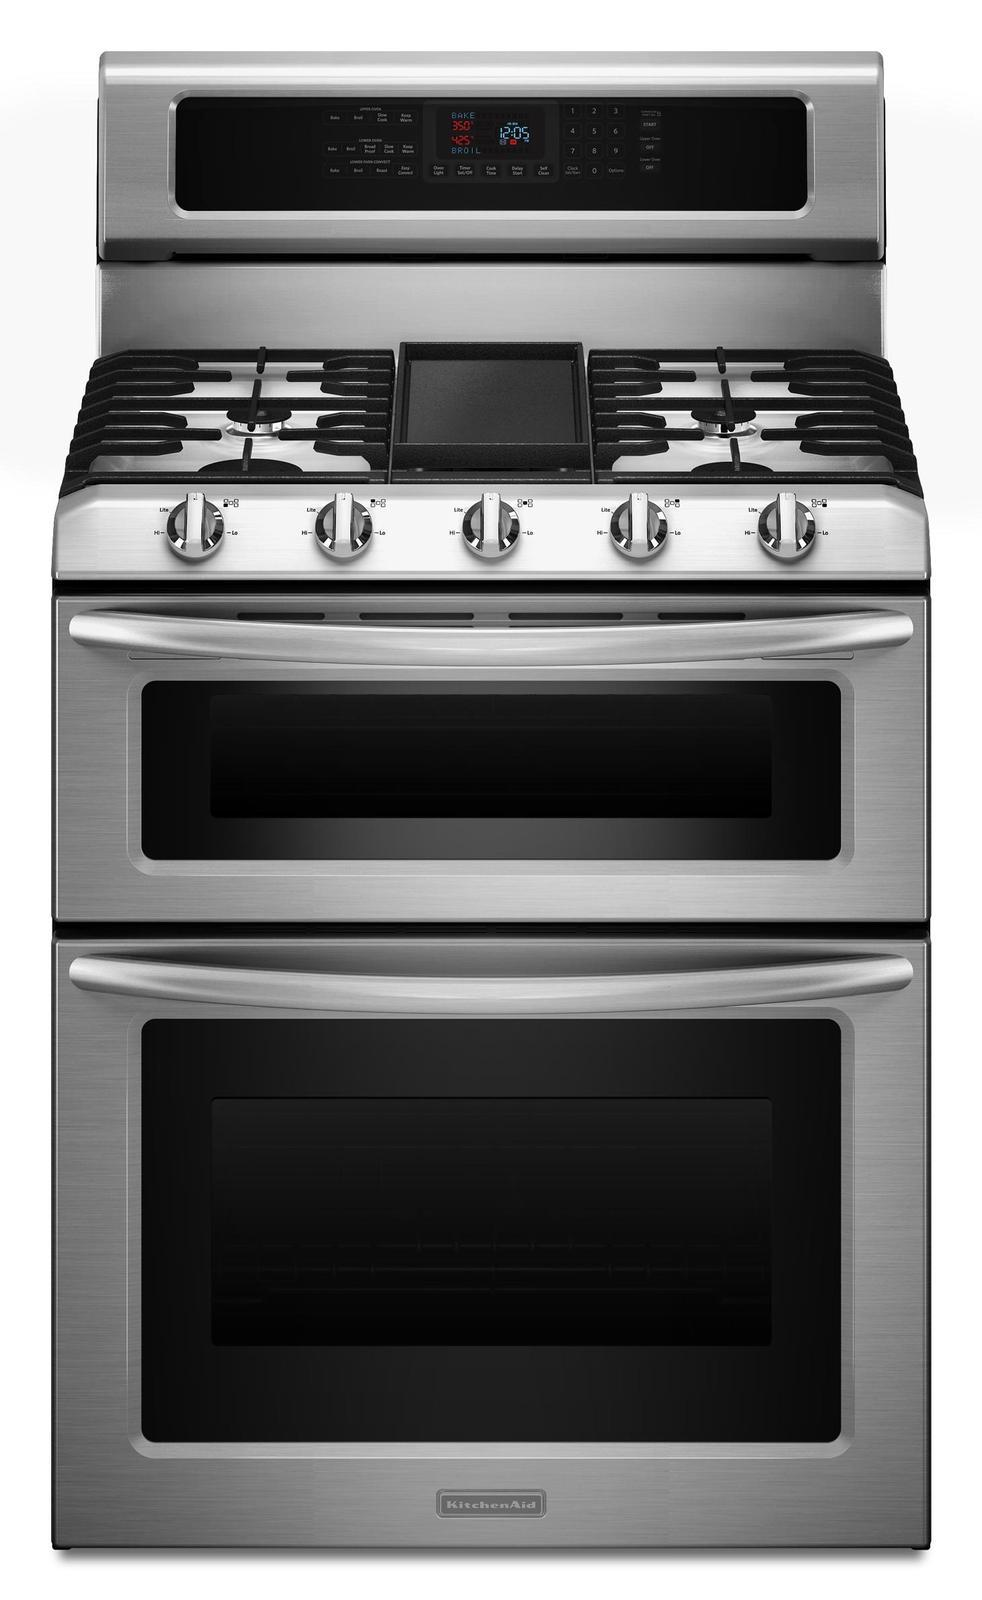 Kdrs505xss Kitchenaid Kdrs505xss Architect Series Ii